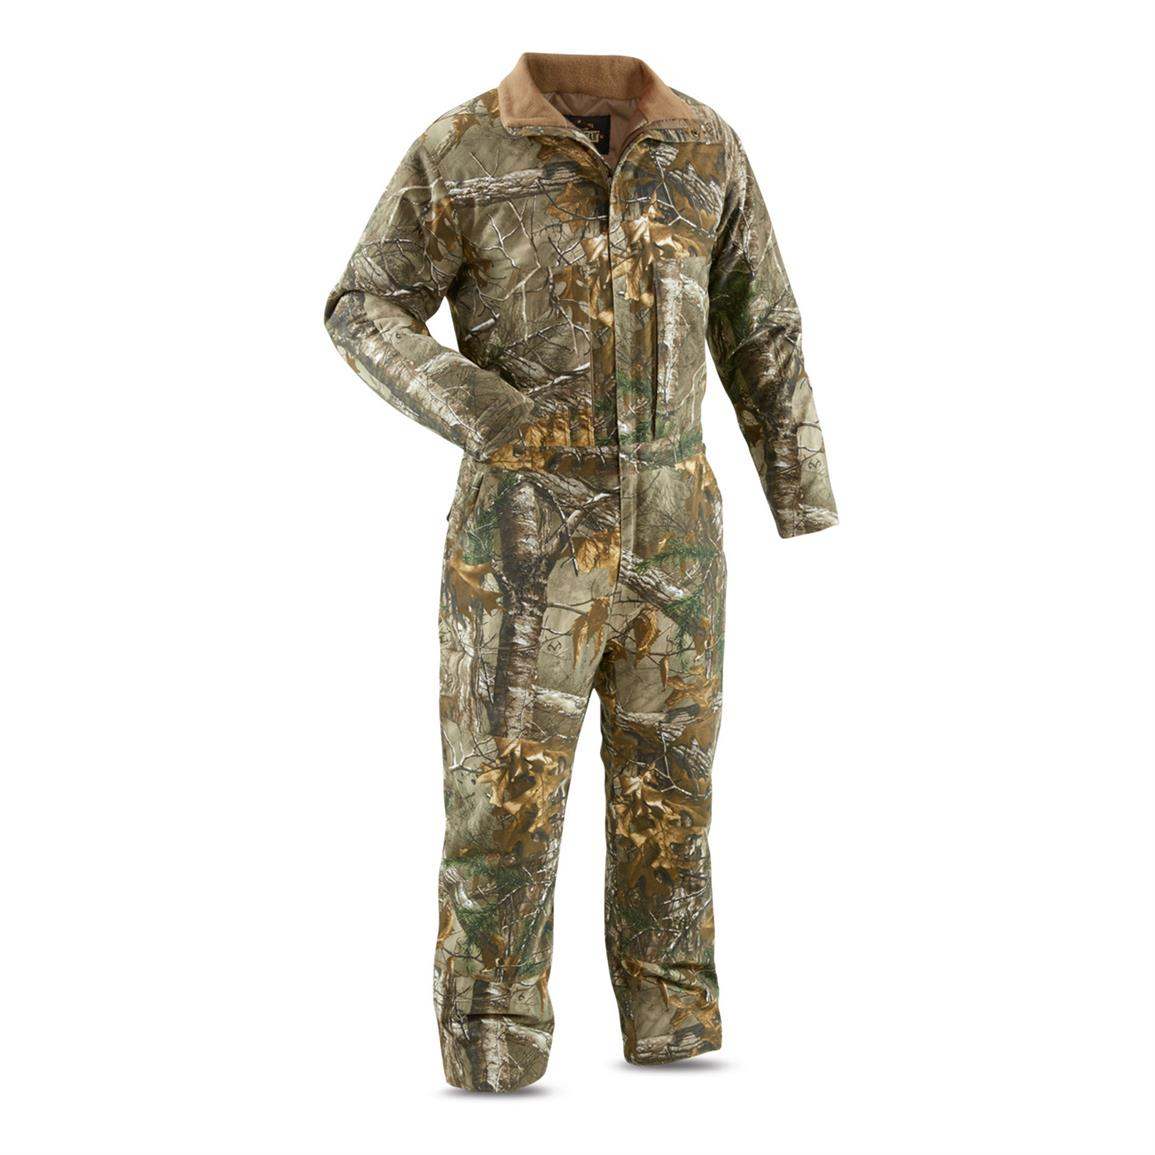 Guide Gear Men's Insulated Silent Adrenaline Hunting Coveralls, Realtree Xtra